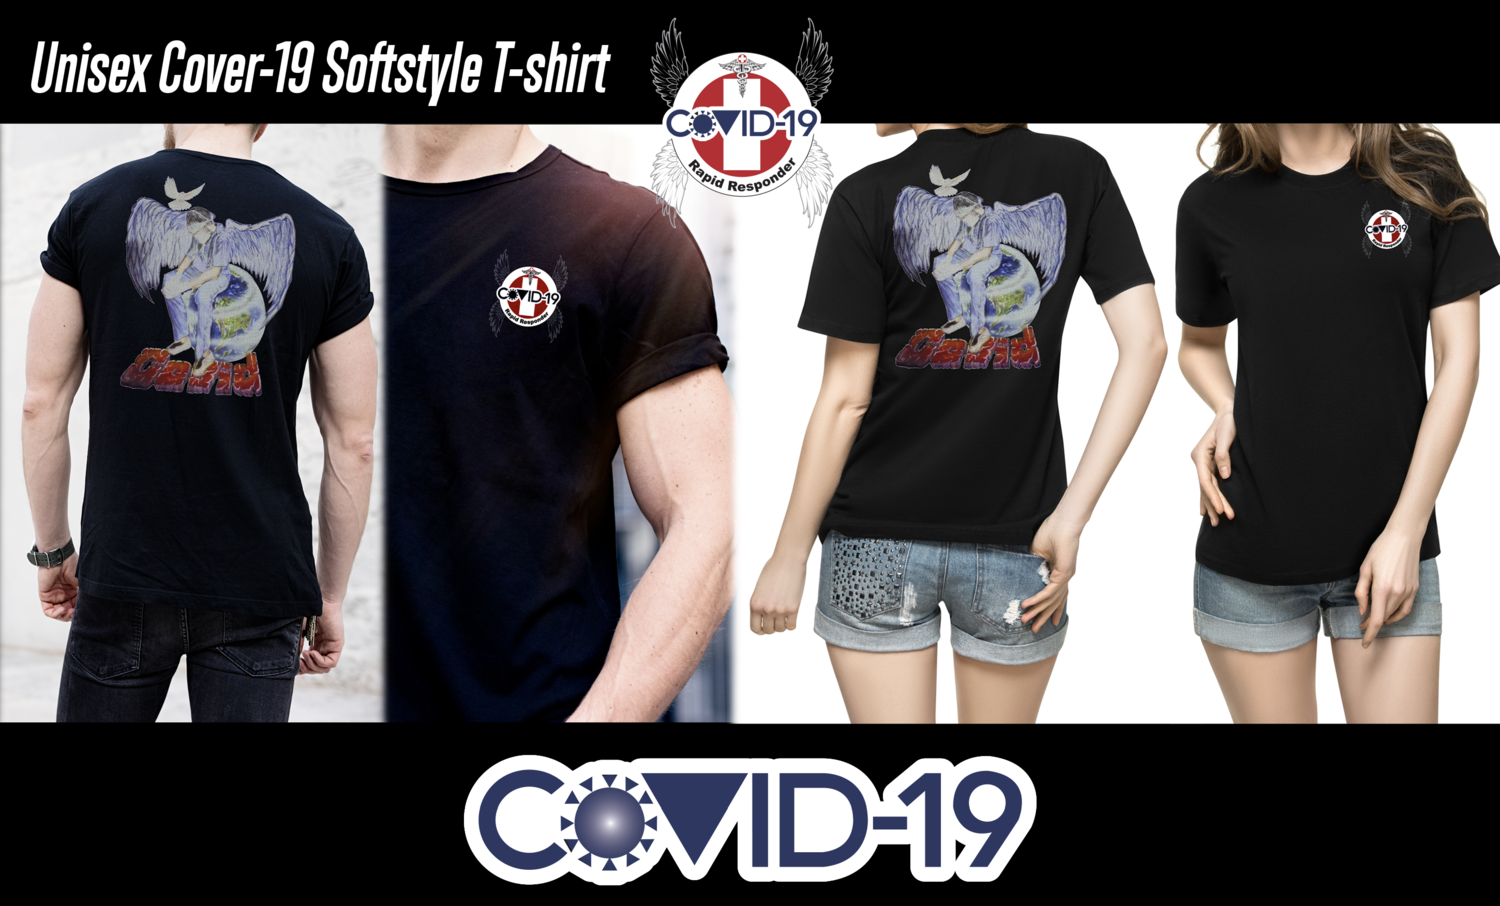 Covid-19 Soft style tee